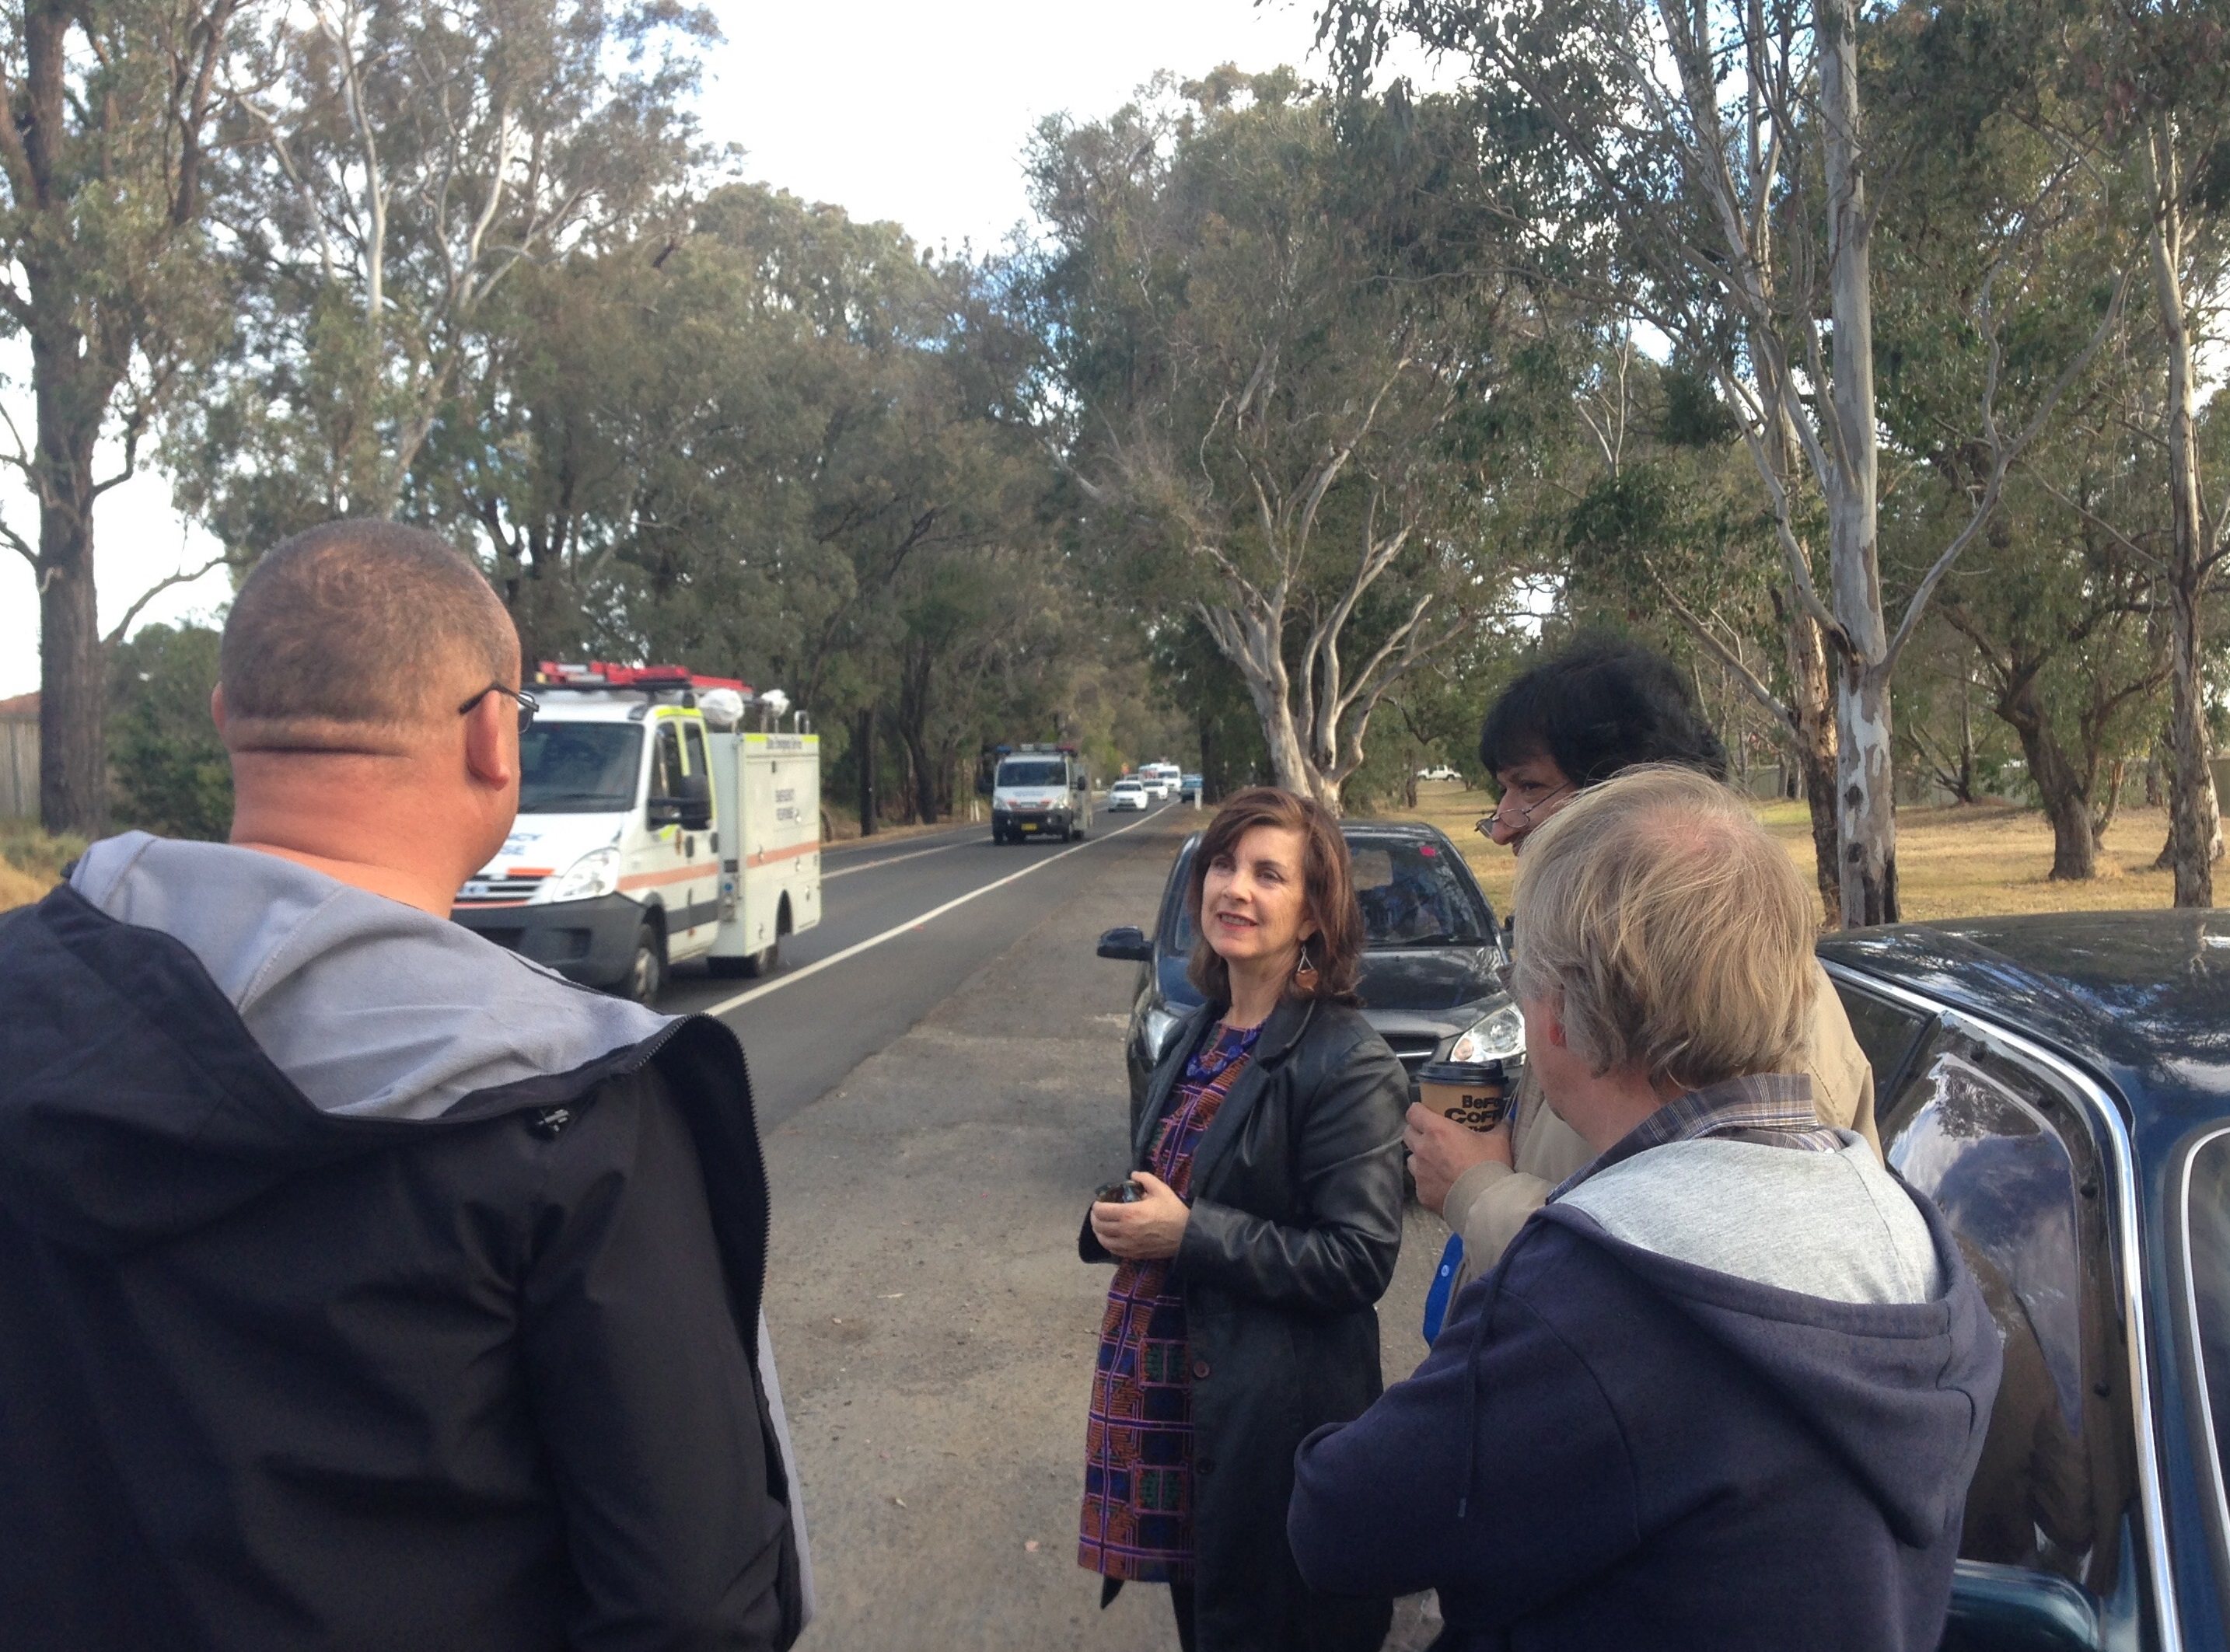 Greens call for greater protection of Campbelltown's koalas - Dawn Walker MP